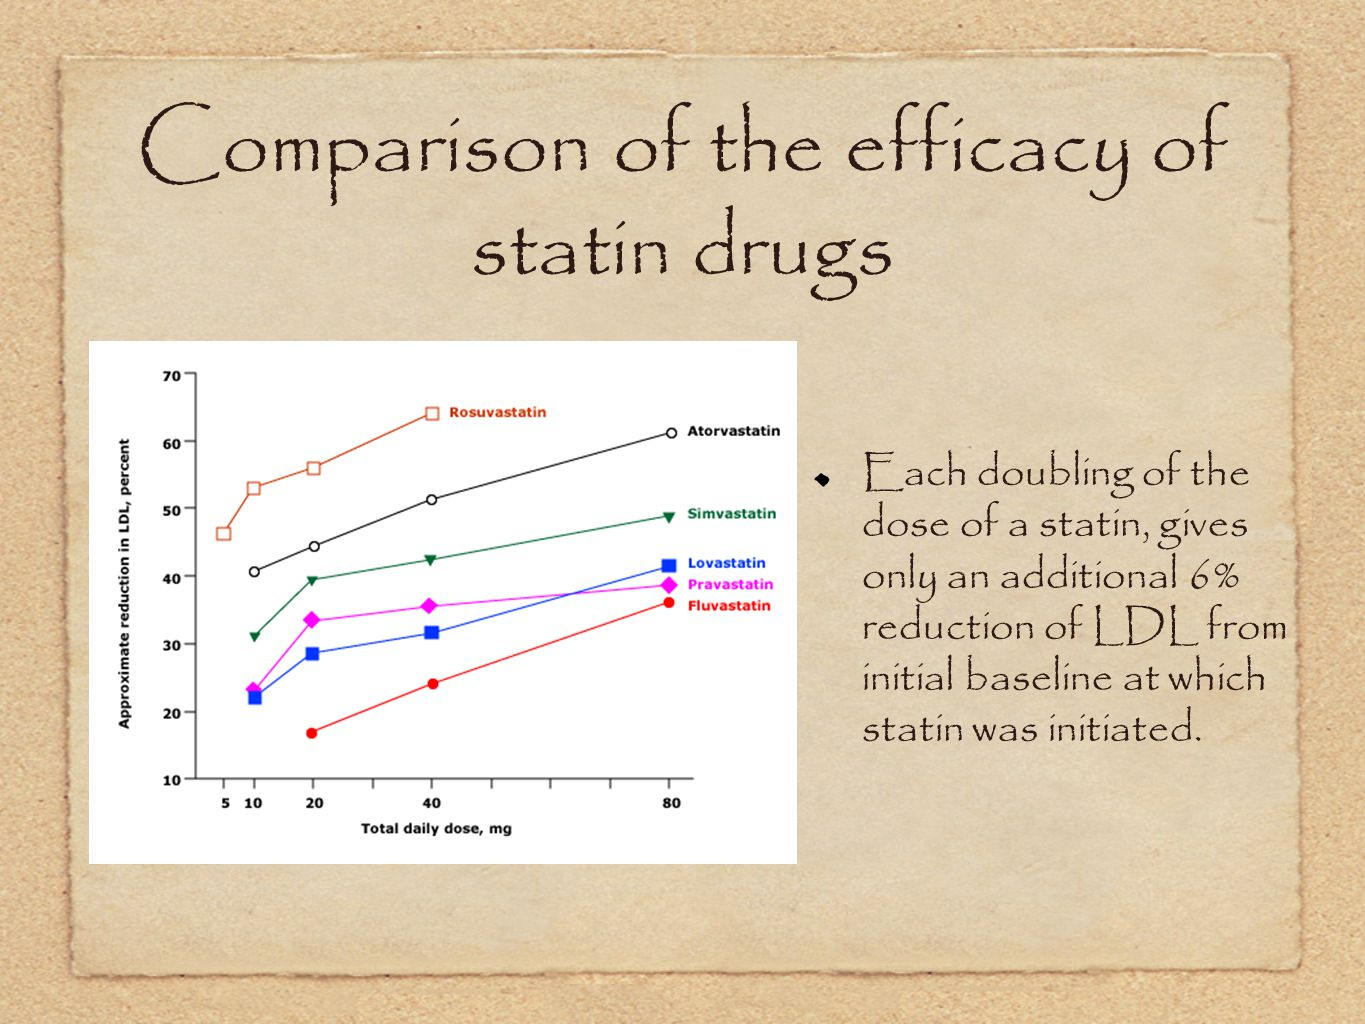 Comparison of the efficacy of statin drugs